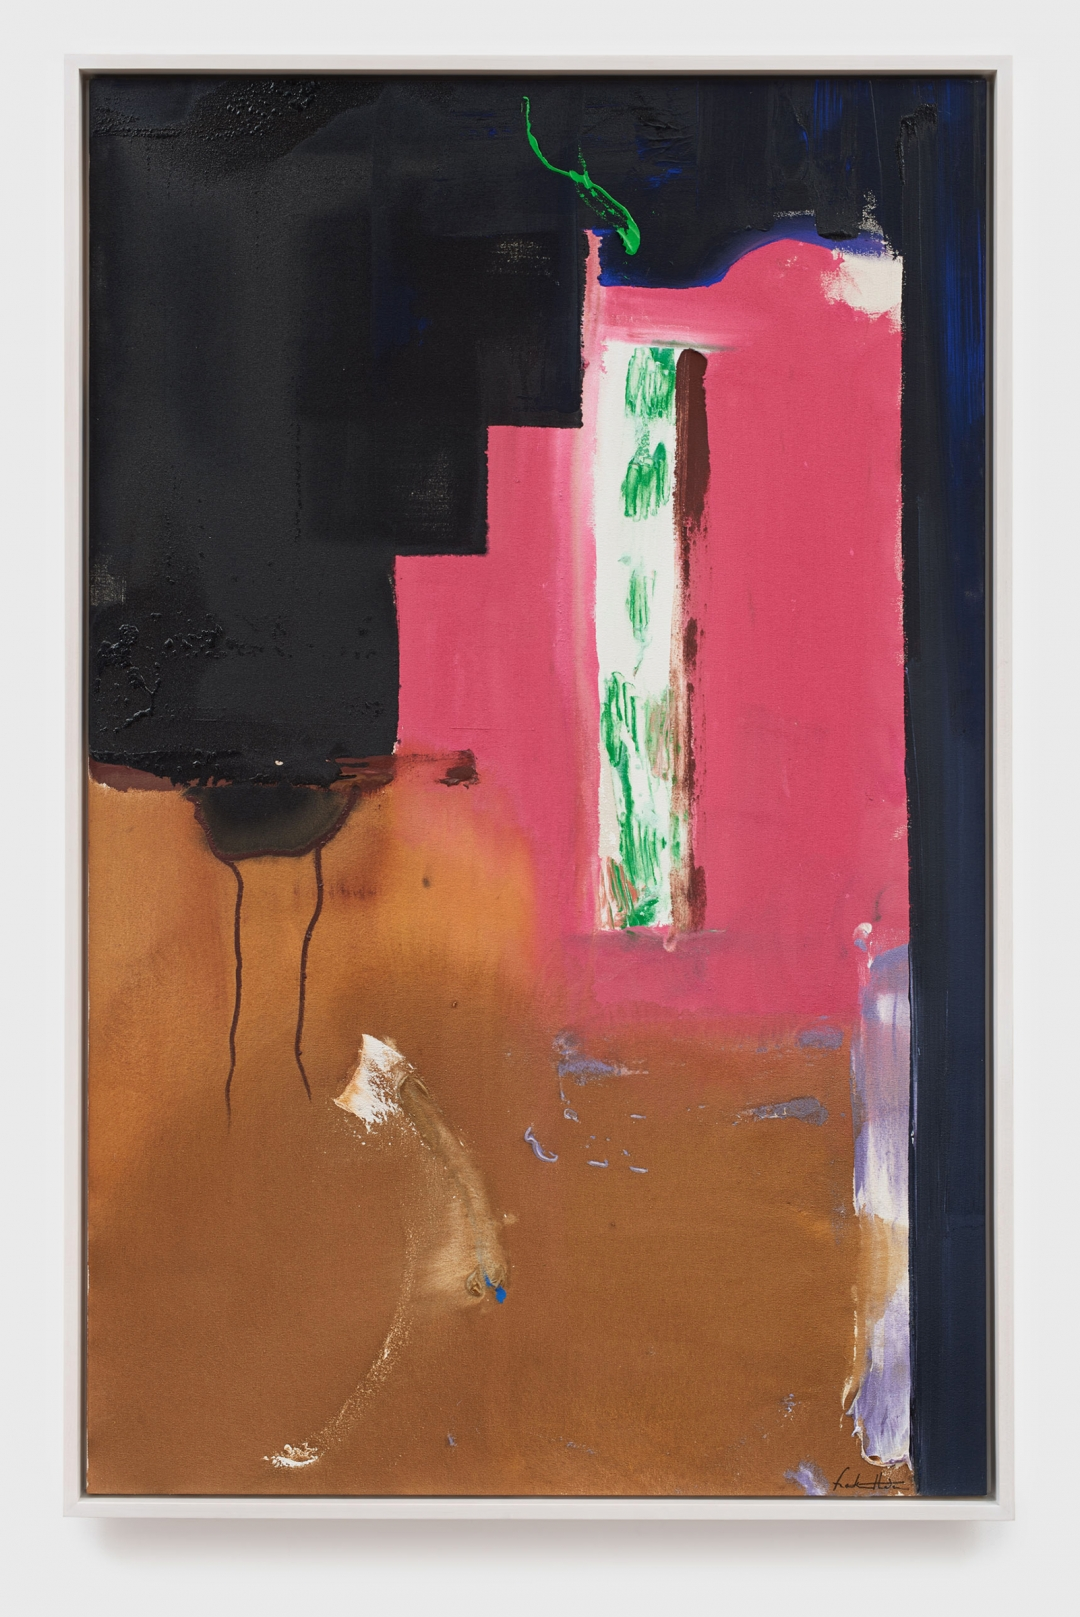 Helen Frankenthaler, <i>Aqueduct</i>, 1987, Acrylic on canvas, 159.40h x 100.30w cm / 62.76h x 39.49w in